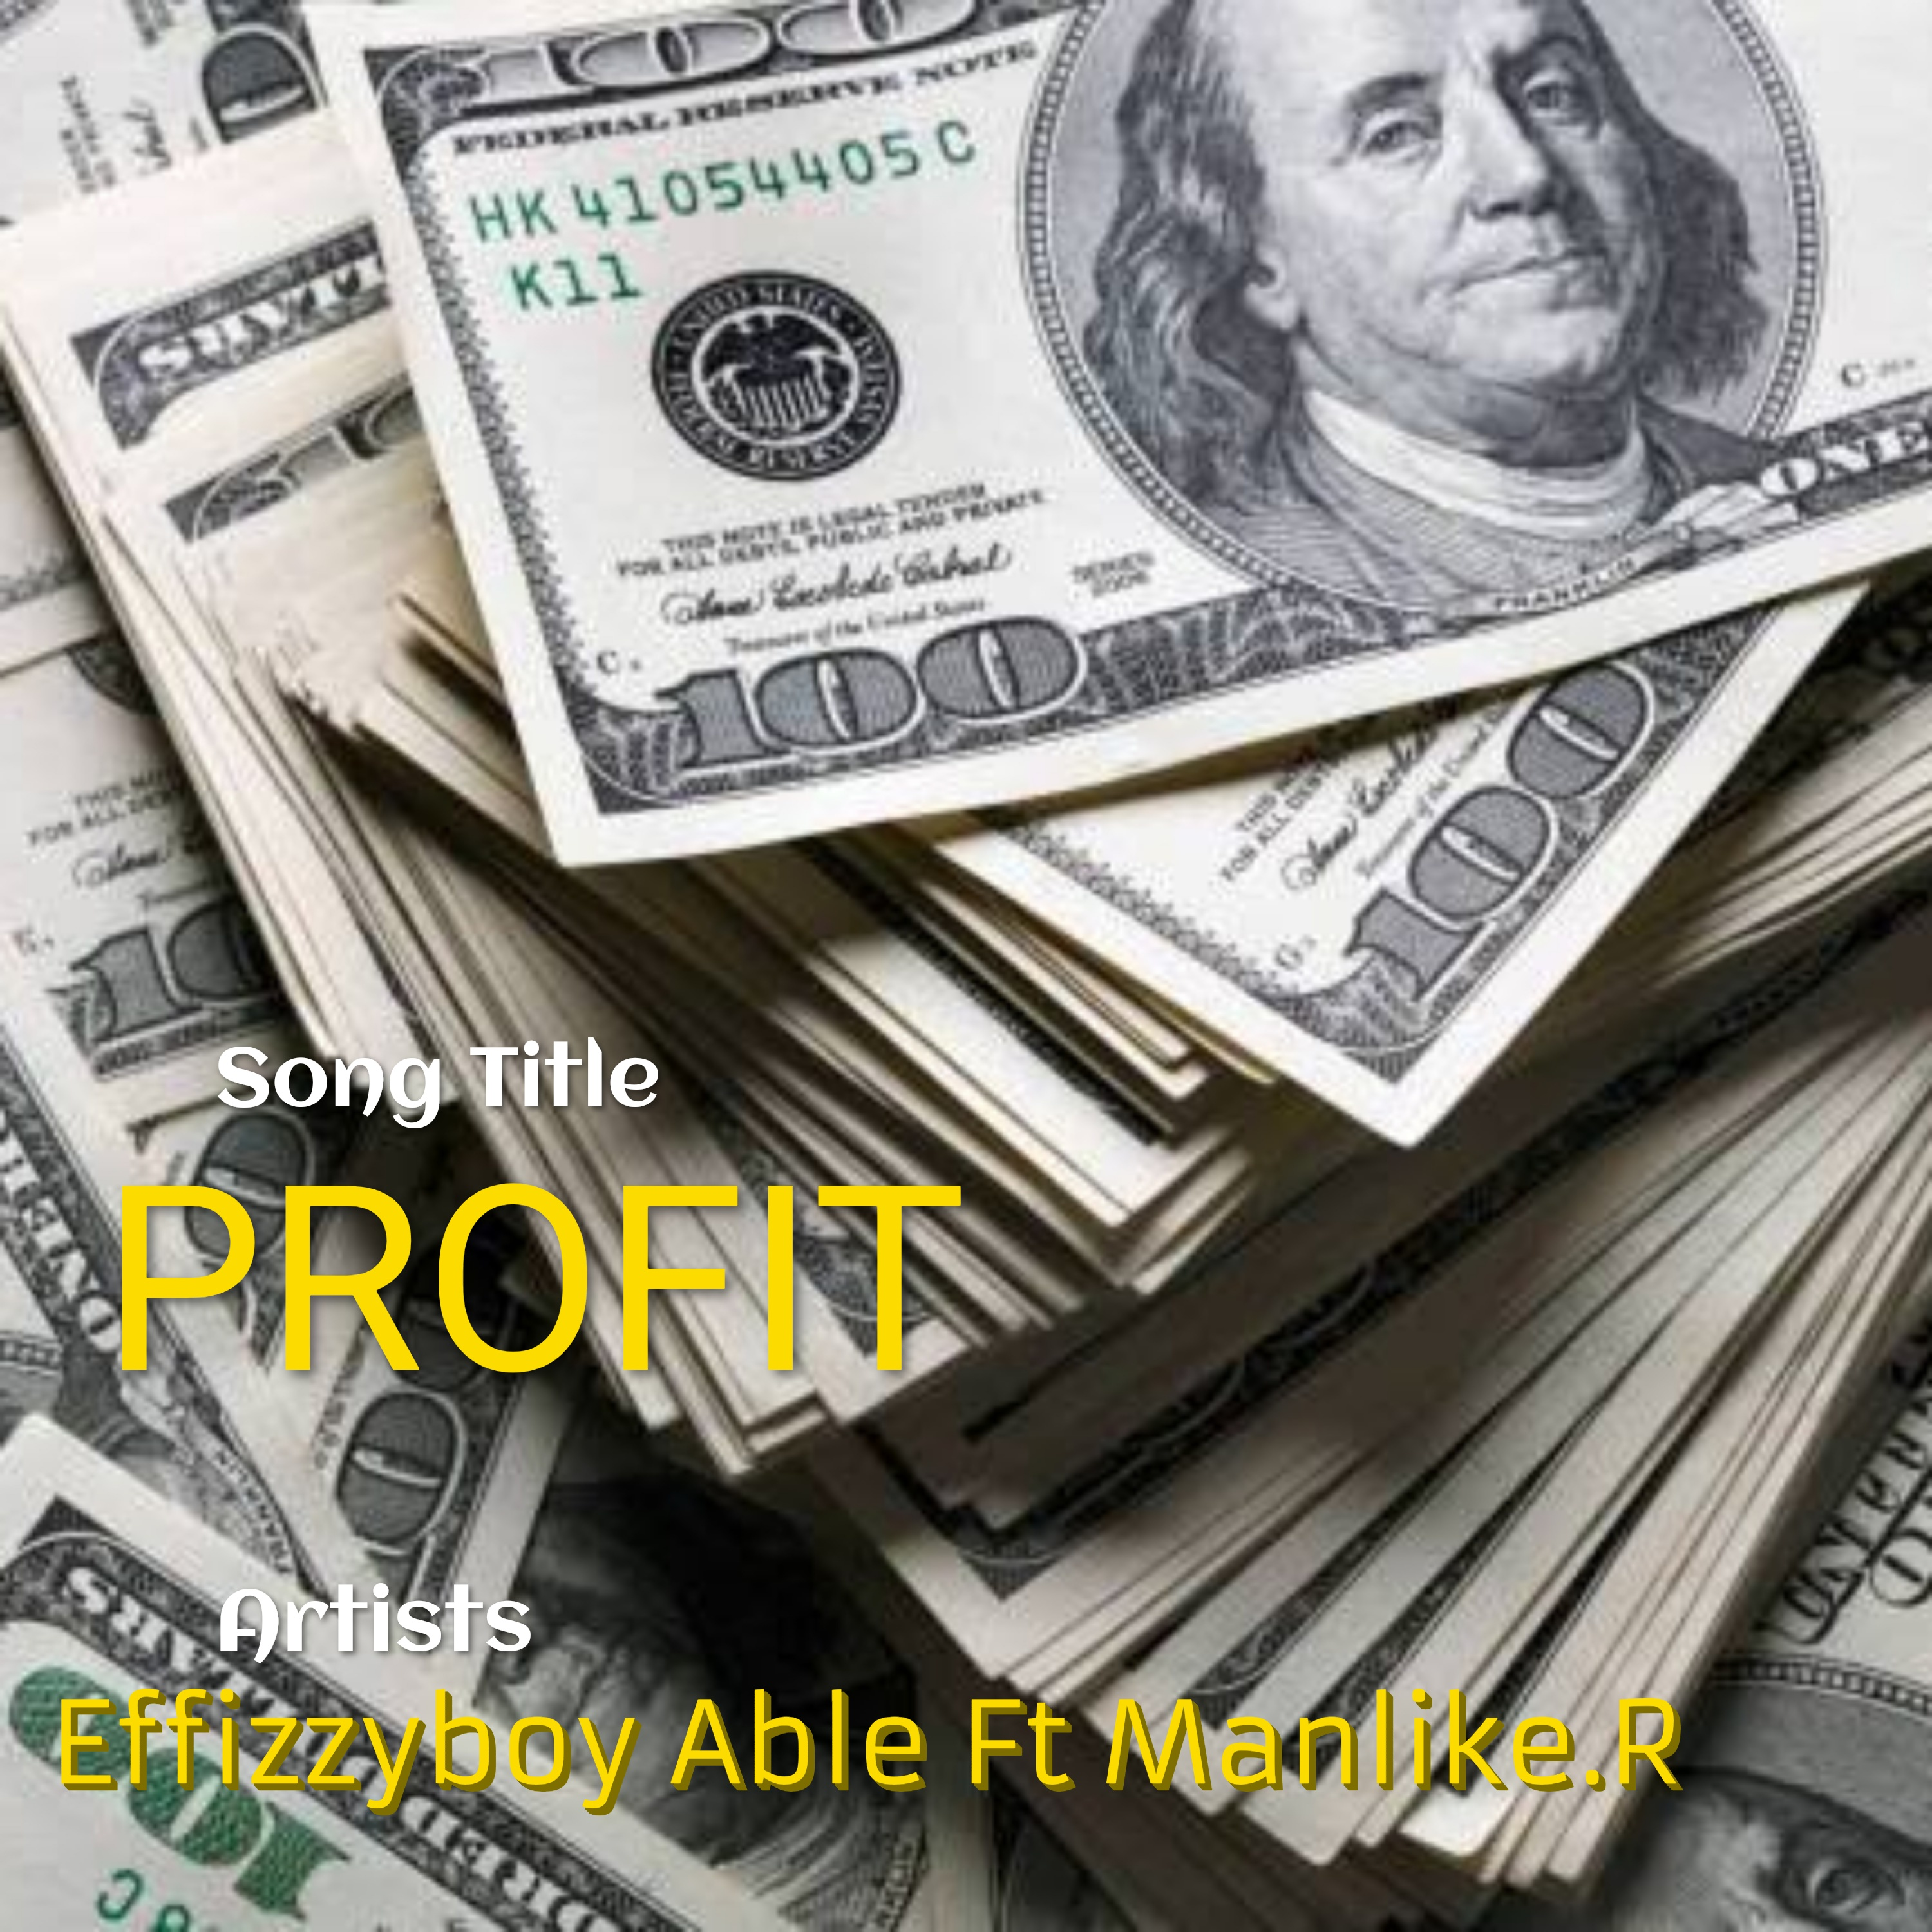 Effizzyboy Able - PROFIT (feat. Manlike.R)